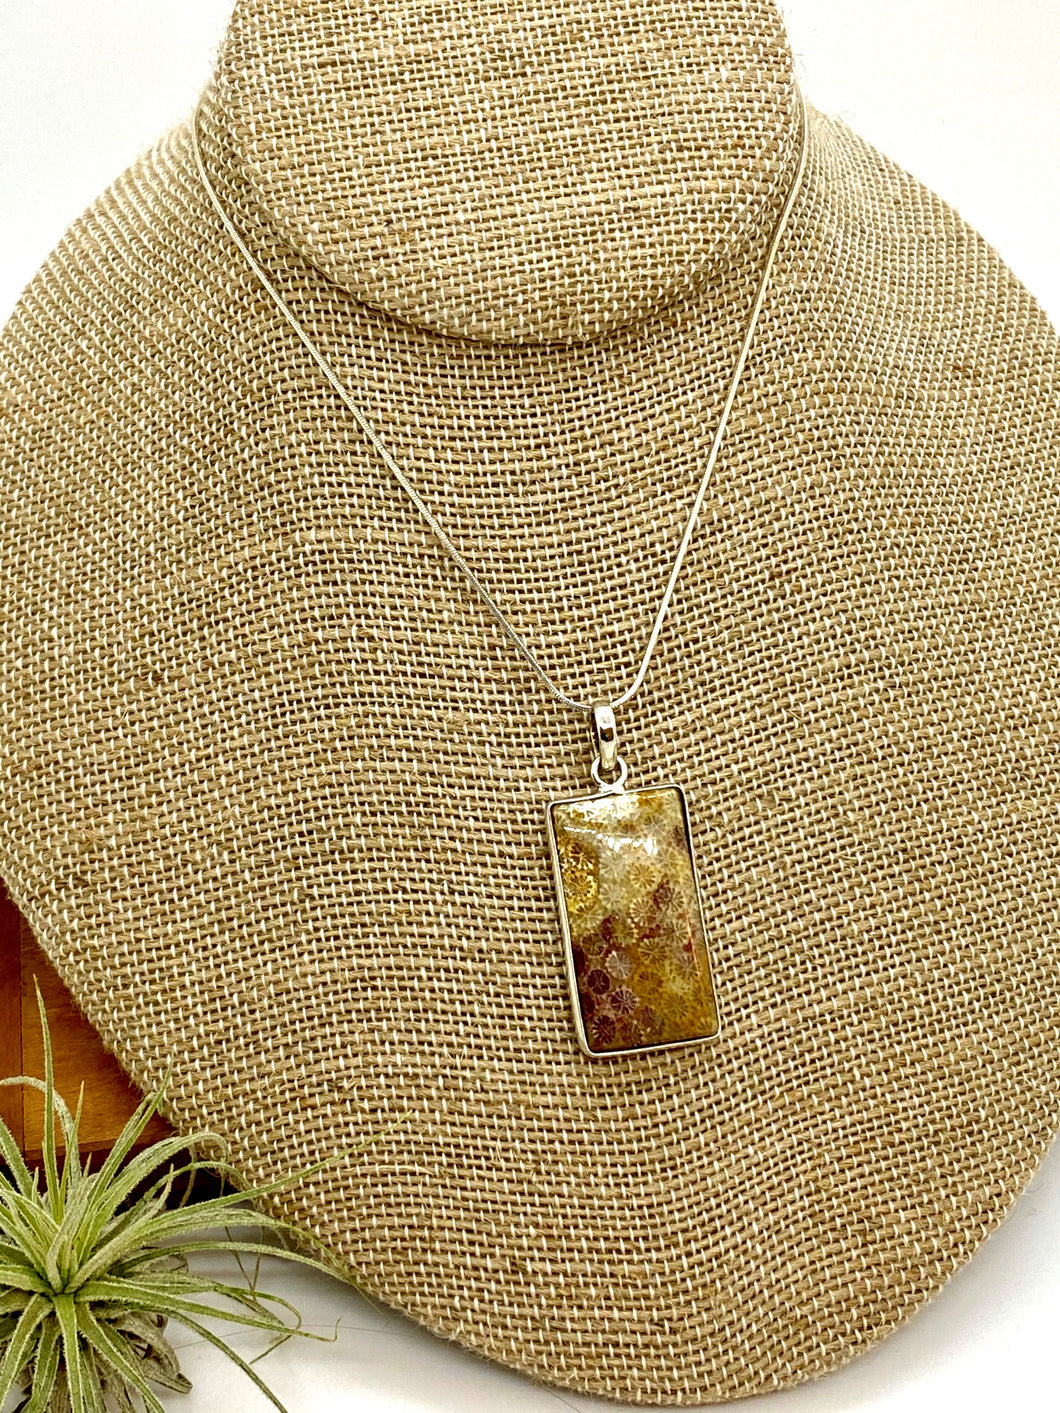 Unique Earth-Tone Coral Fossil Pendant